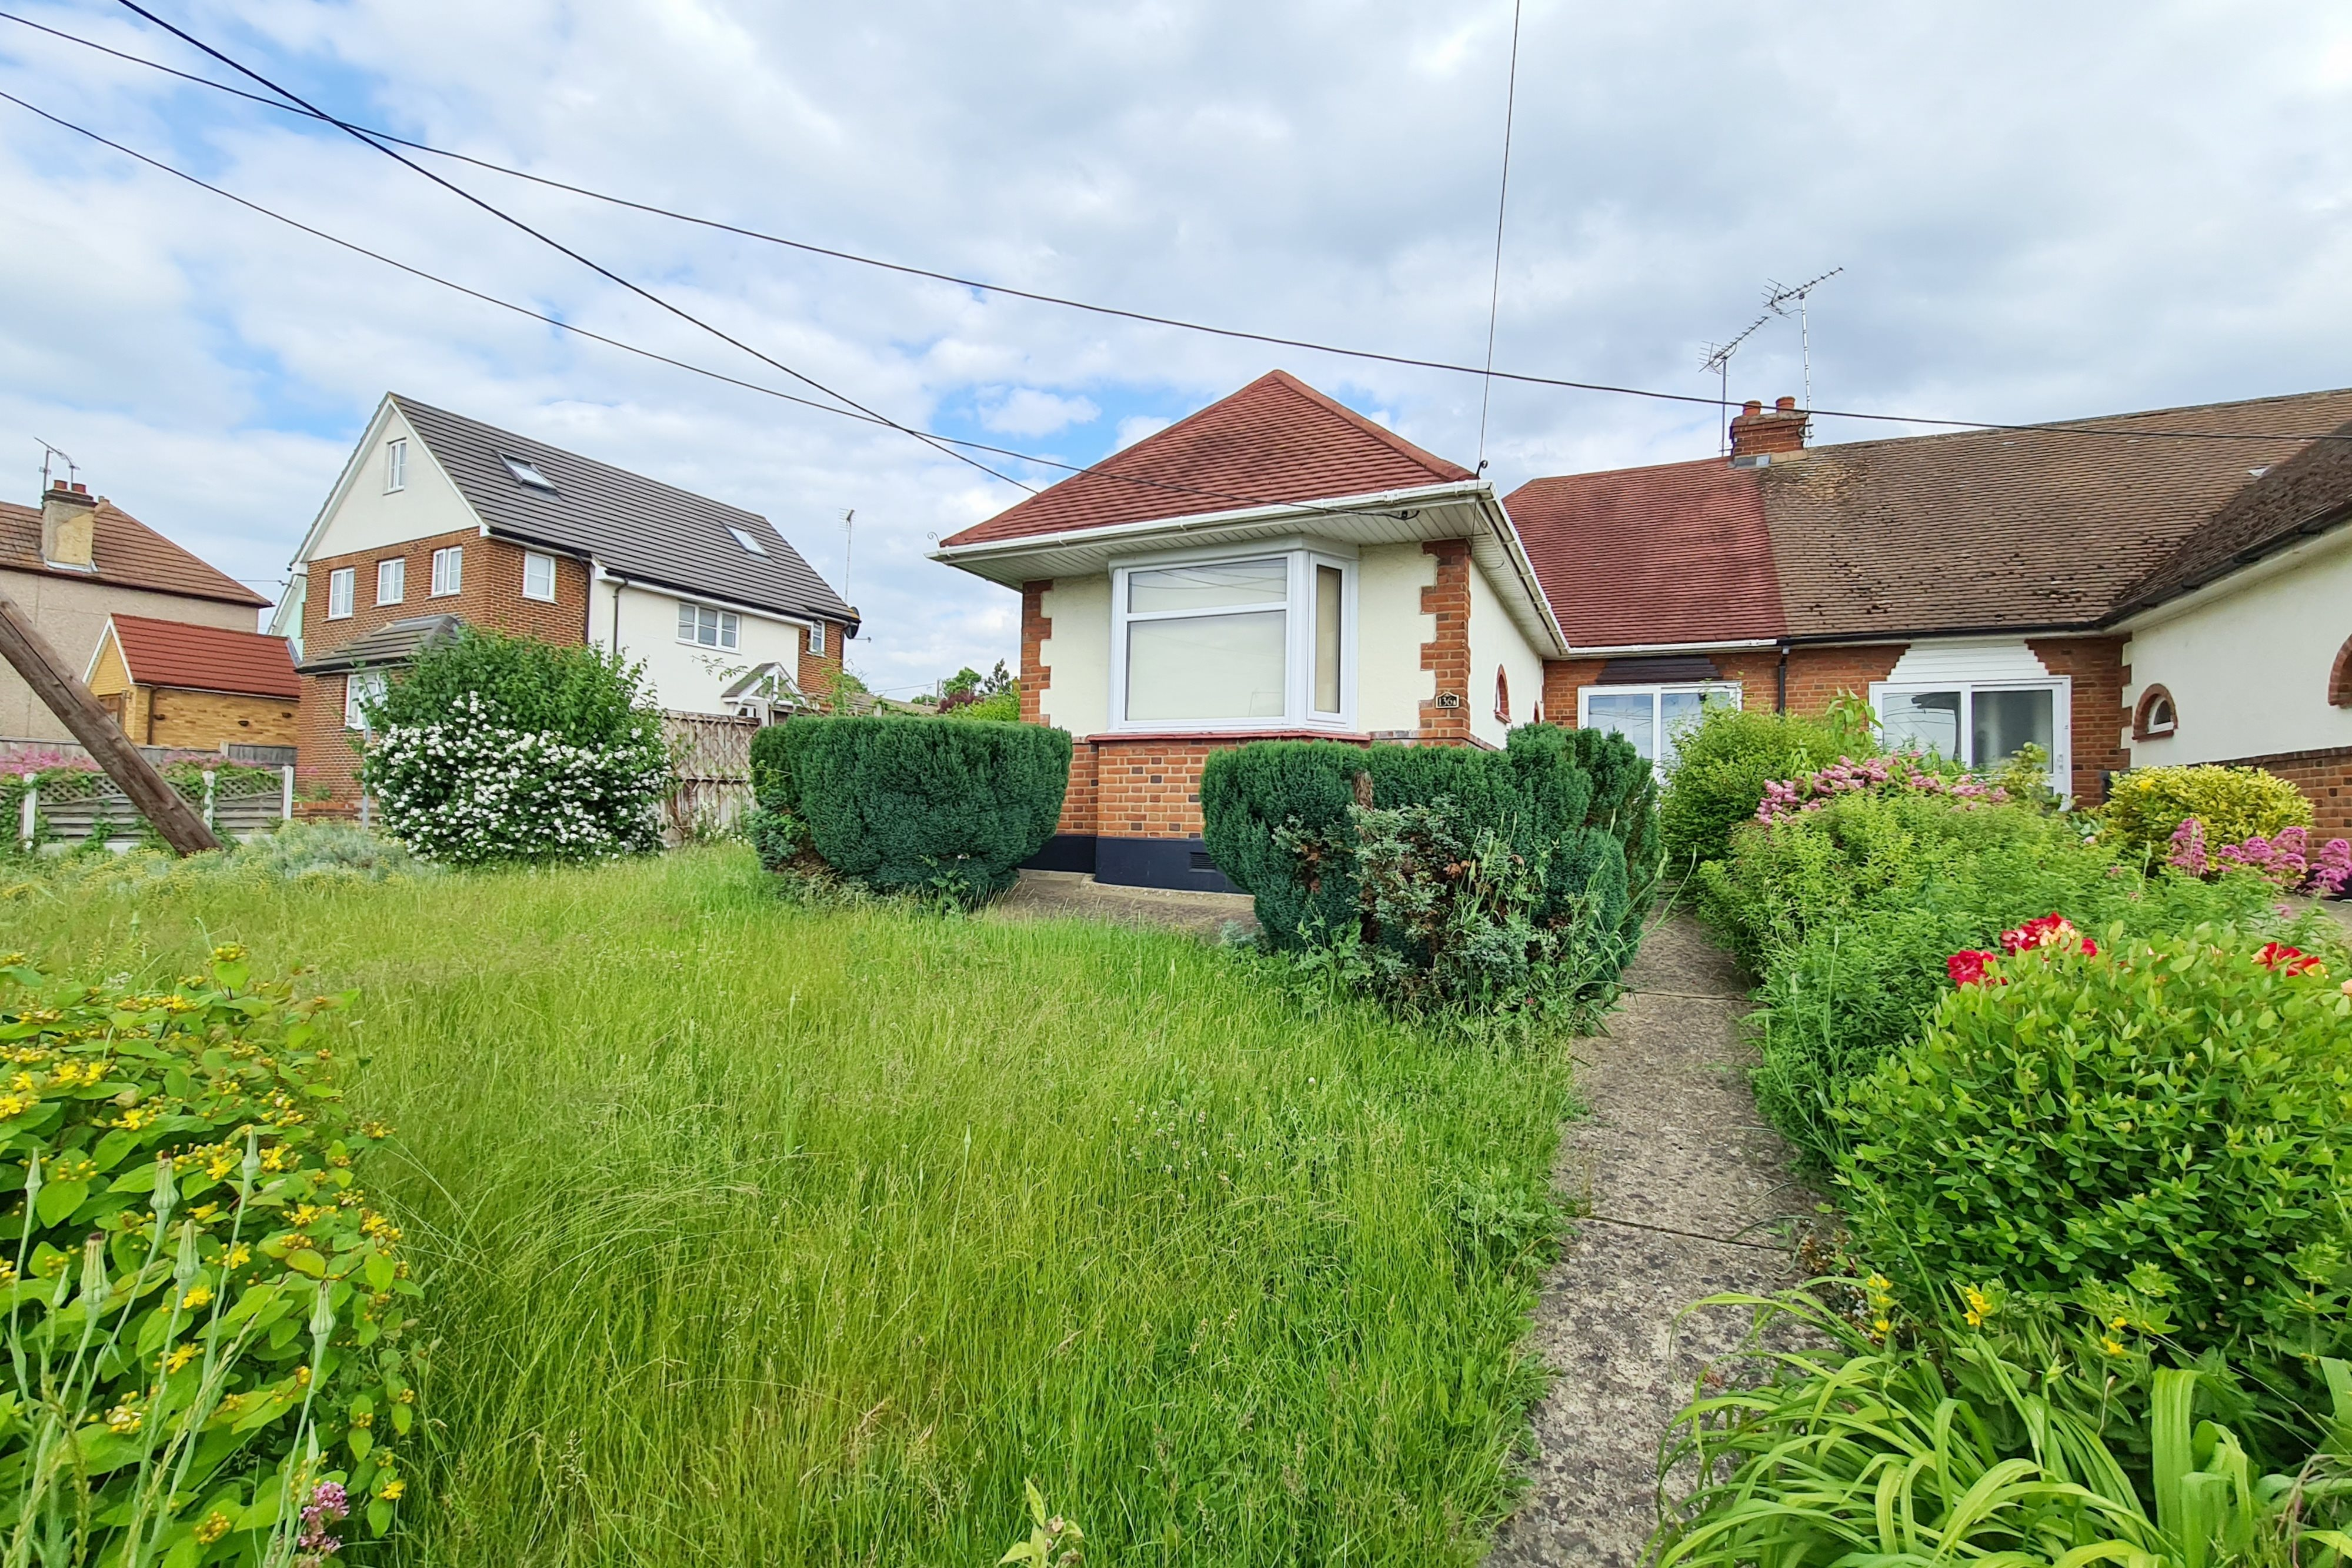 2 bed semi-detached bungalow for sale in Downhall Road, Rayleigh - Property Image 1